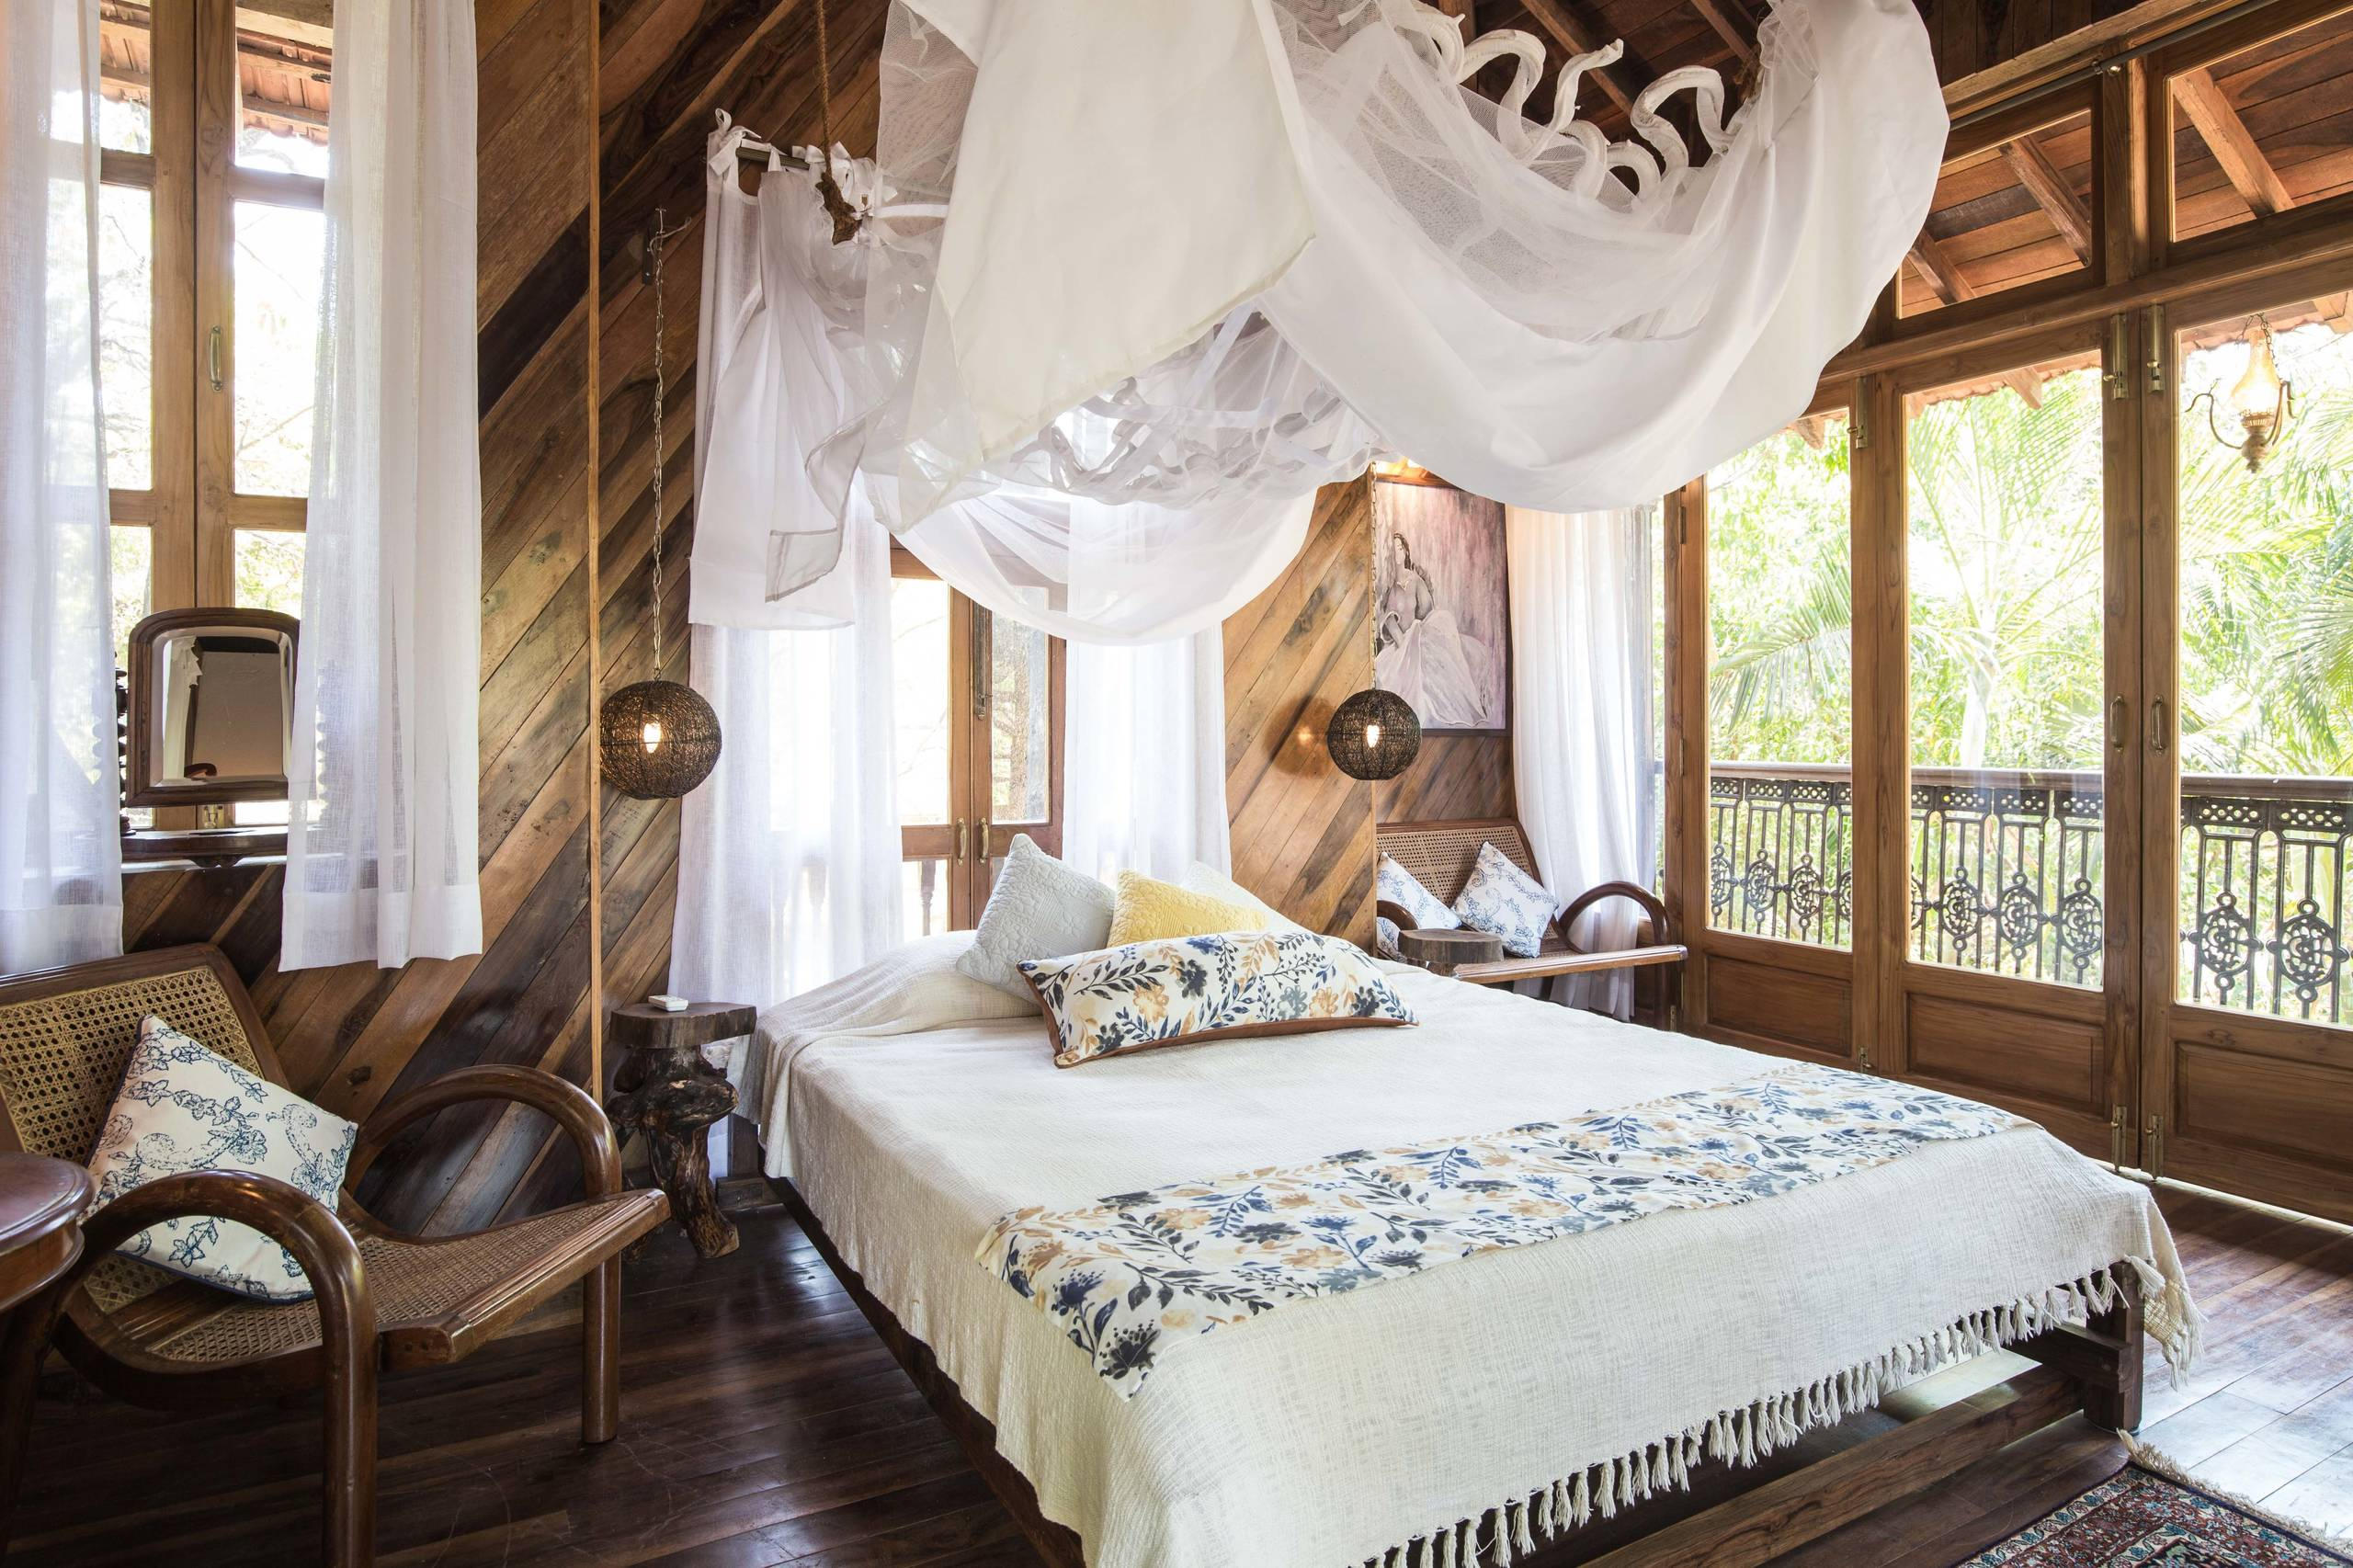 12 Beautiful Tropical Bedroom Pictures & Ideas - January, 12  Houzz